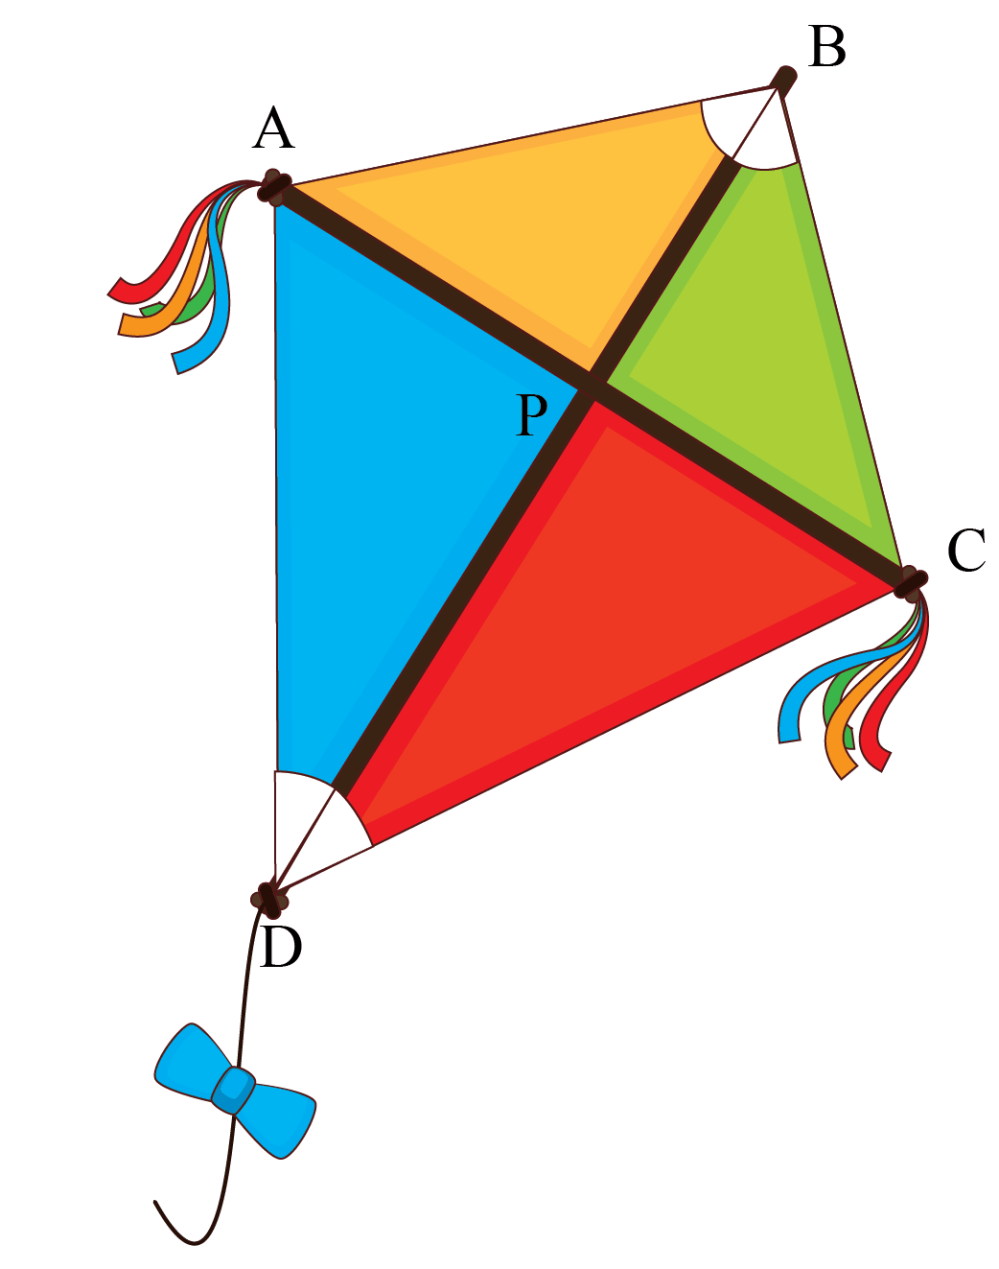 medium resolution of Angle bisector theorem in a triangle- Proofs and solved examples - Cuemath